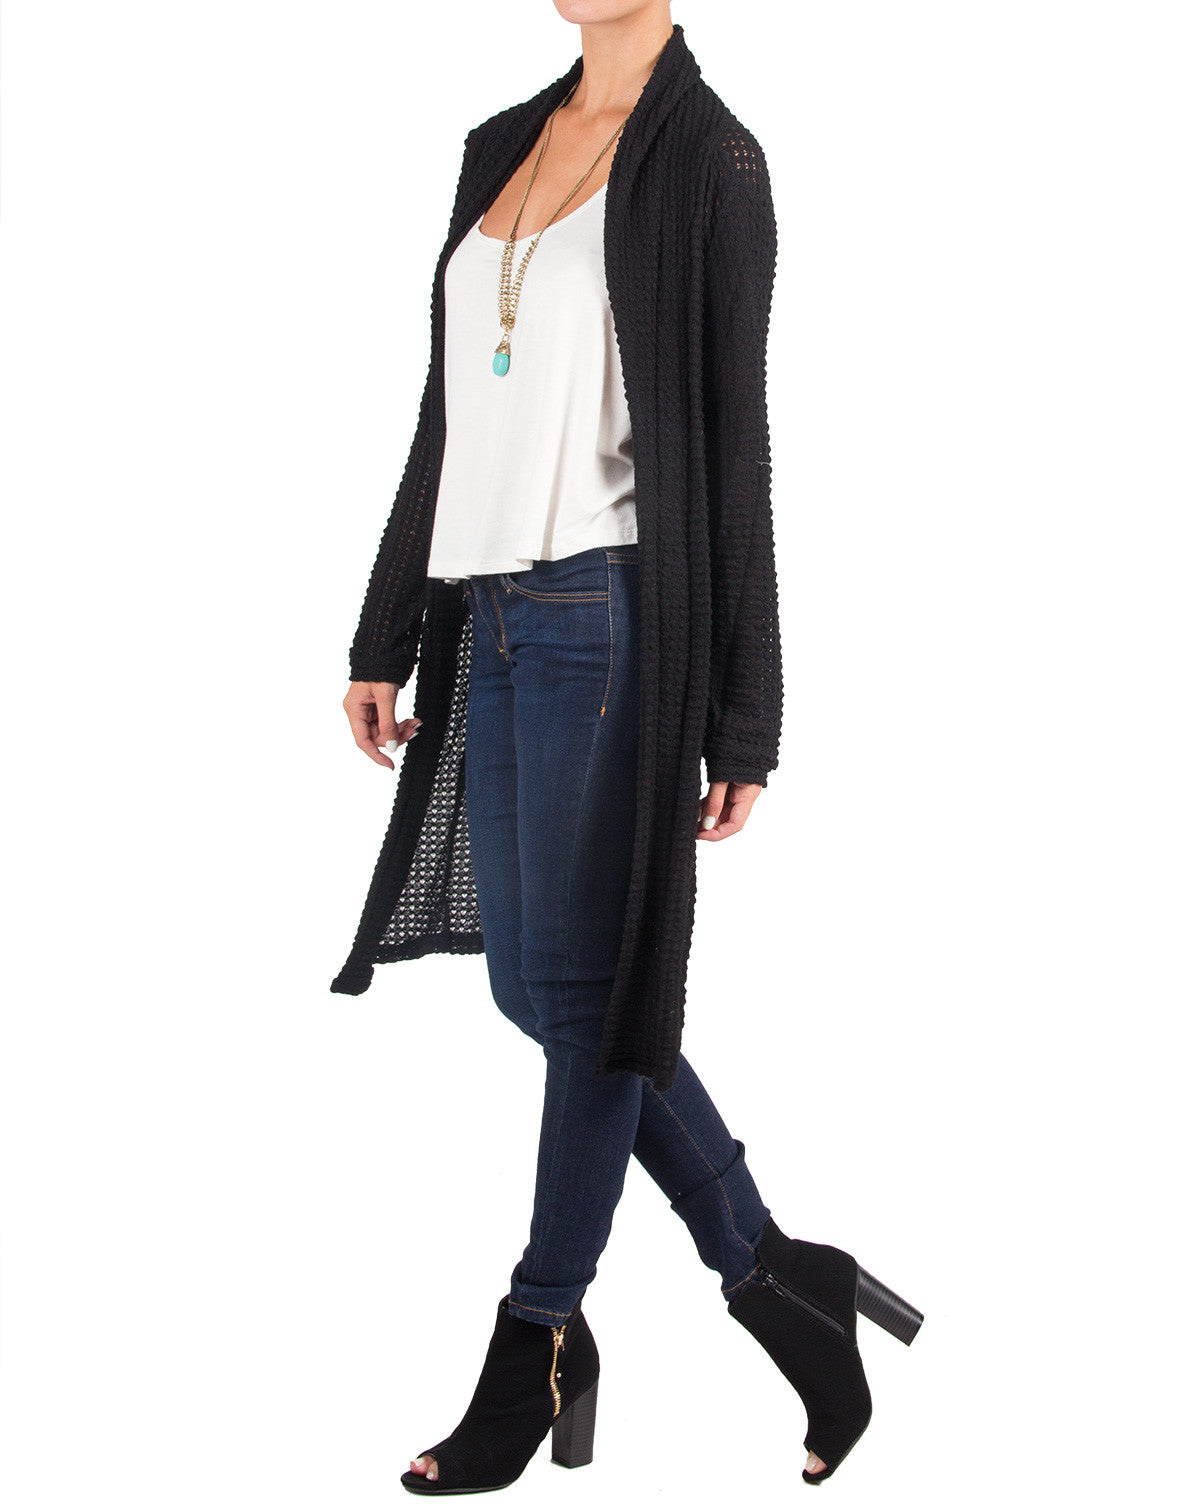 Follow Me Cardigan - Honey Punch CT 4777-Black